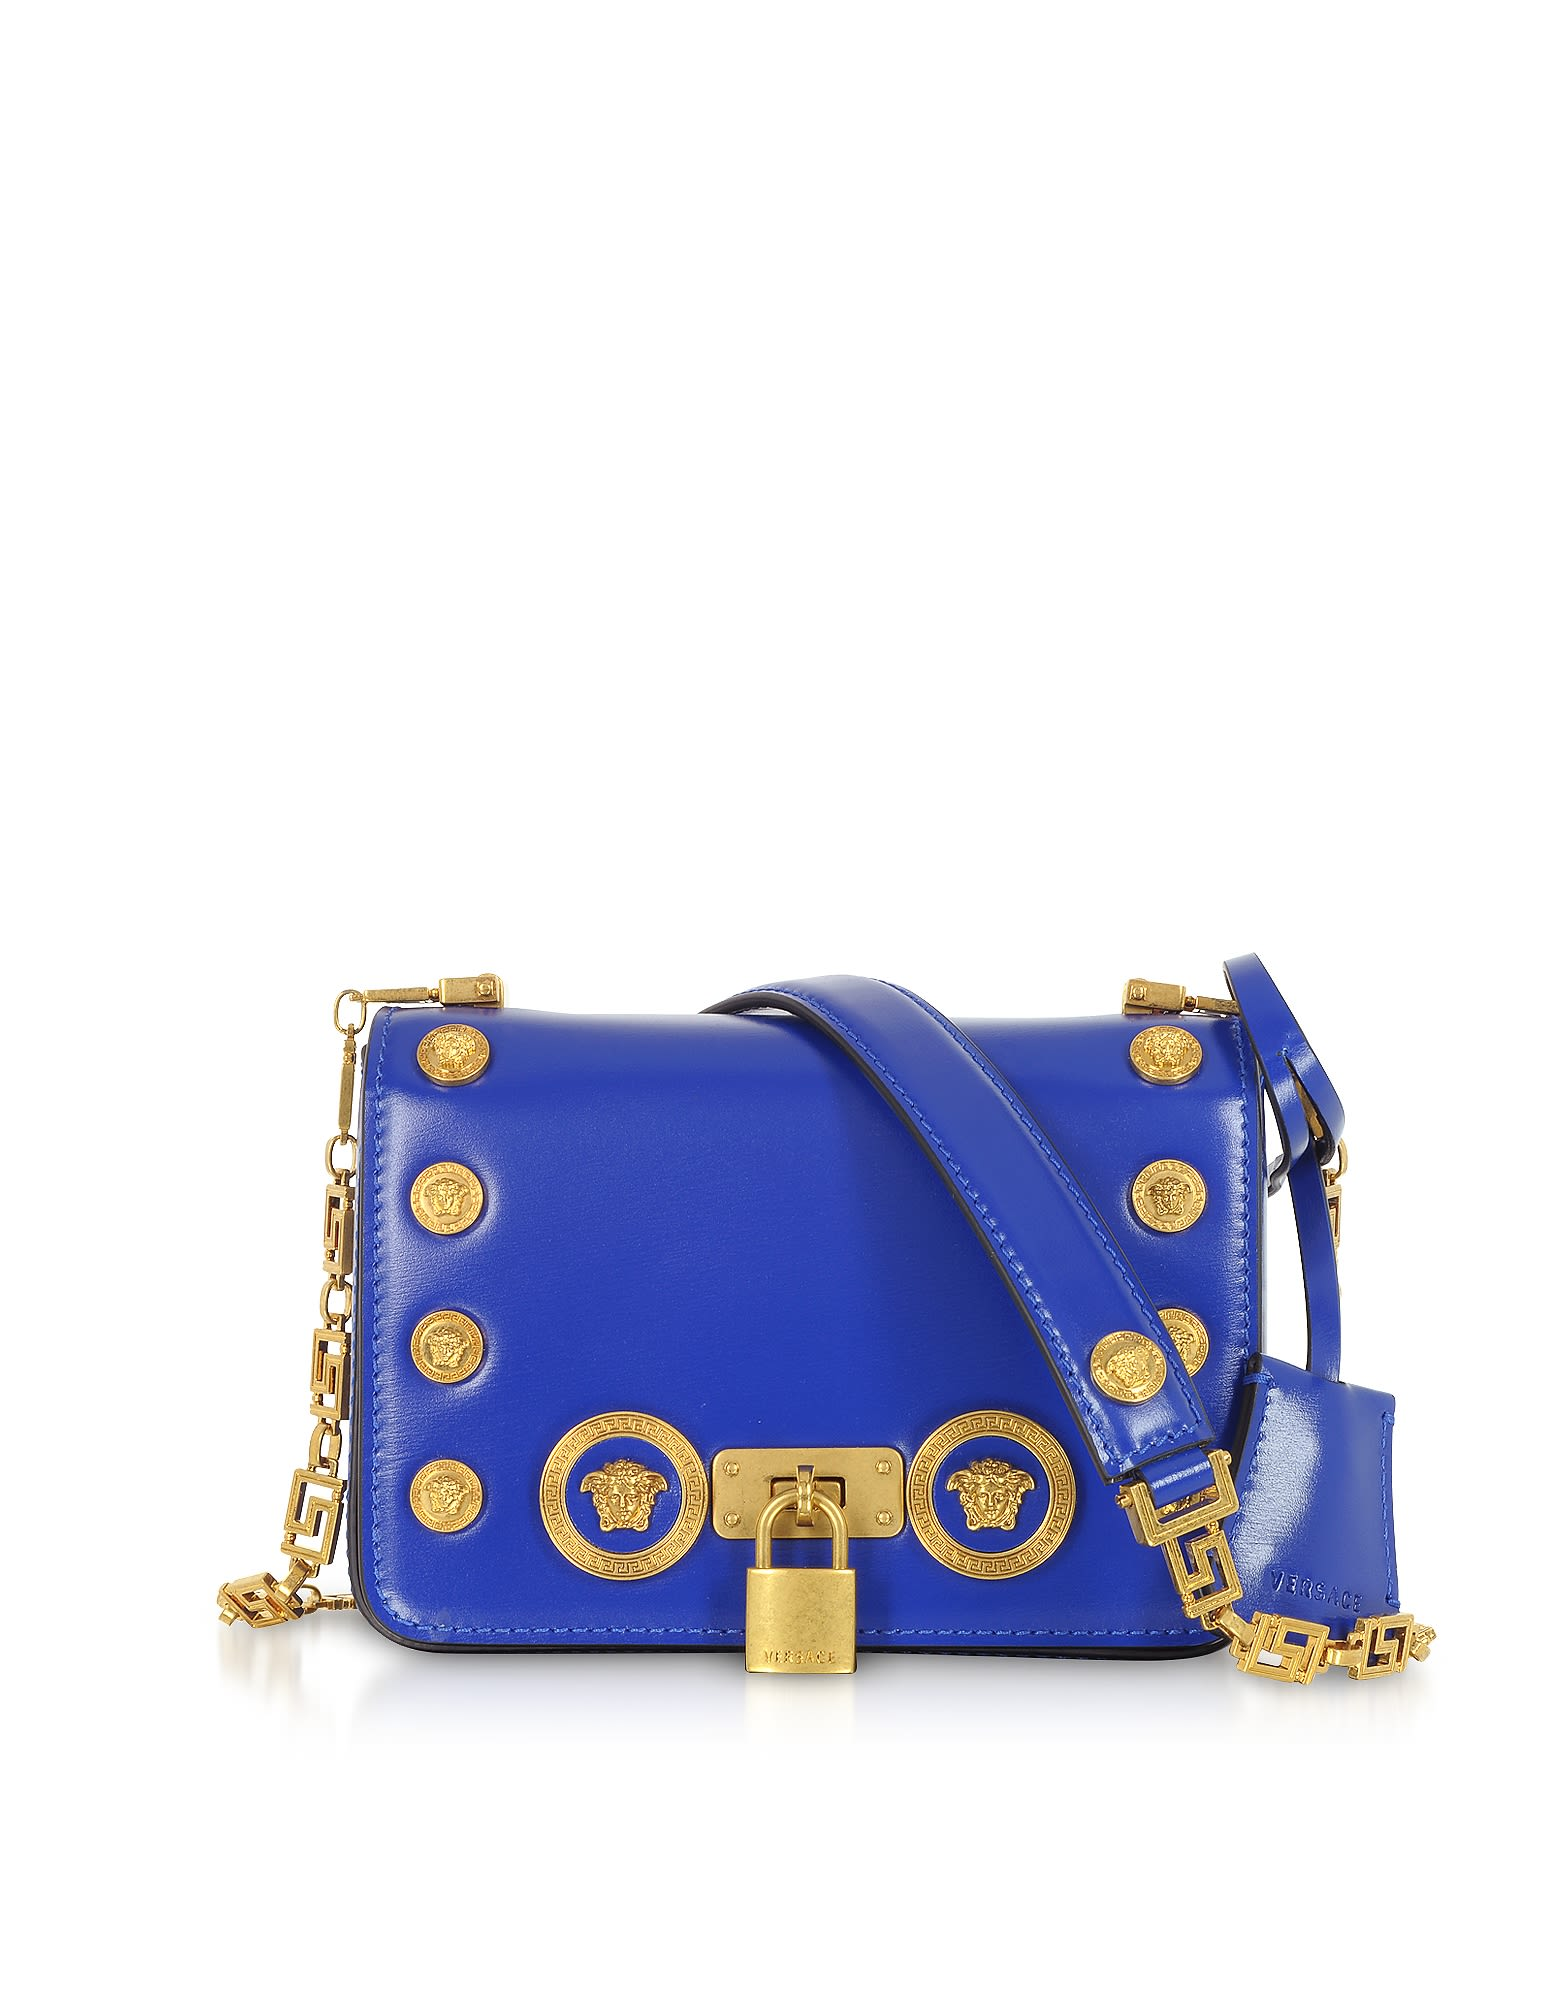 Versace Versace Small Icon Leather Shoulder Bag - Blue - 10770726 ... 7334ee3dd36e0